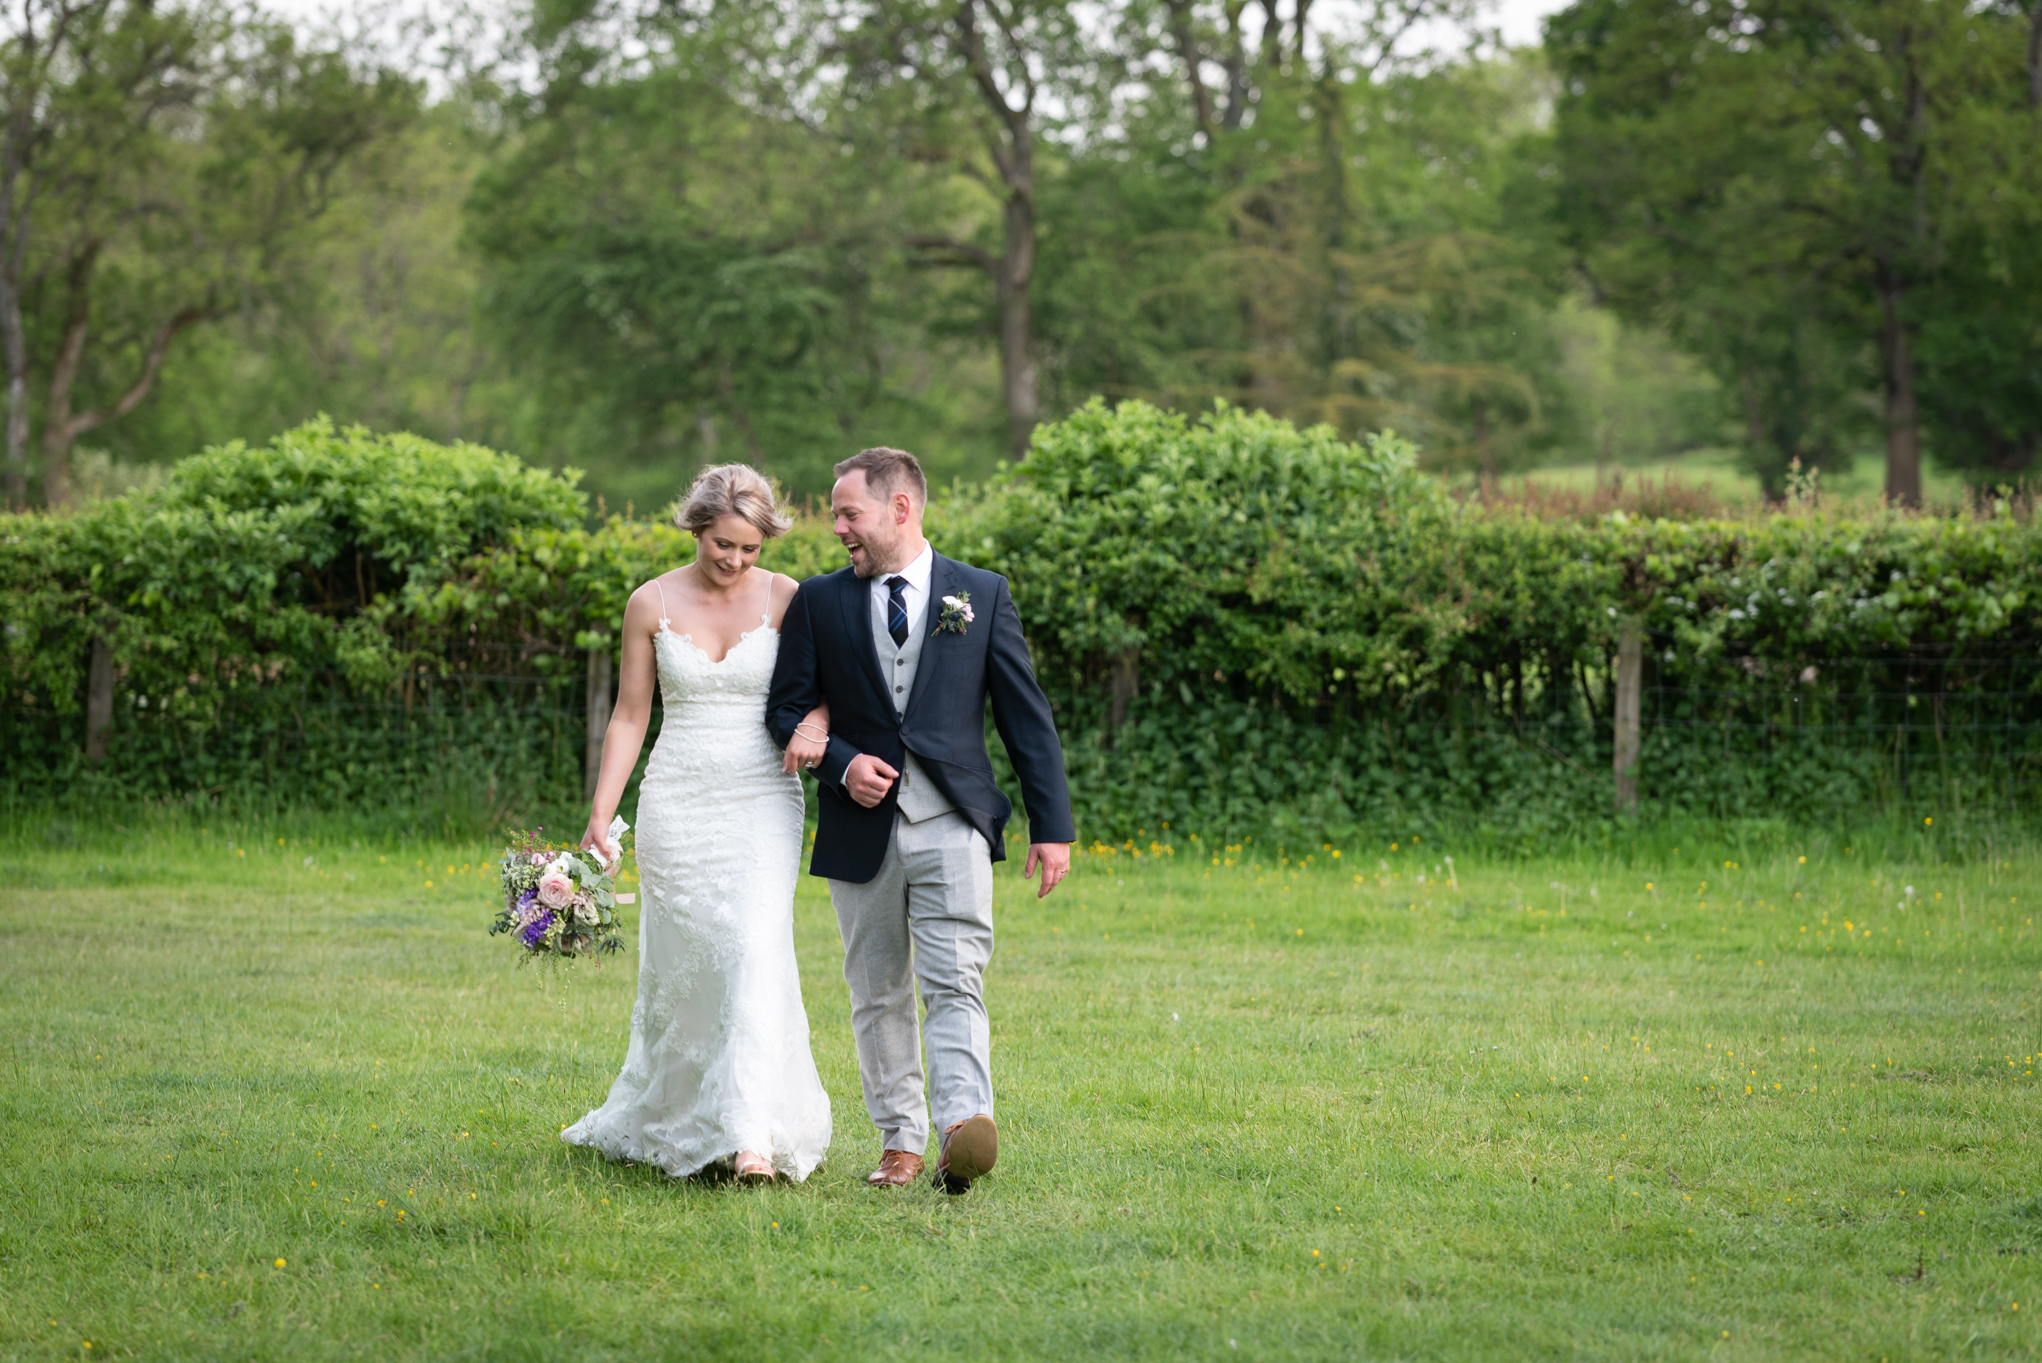 Bride and groom walking - Powys Wedding Photography